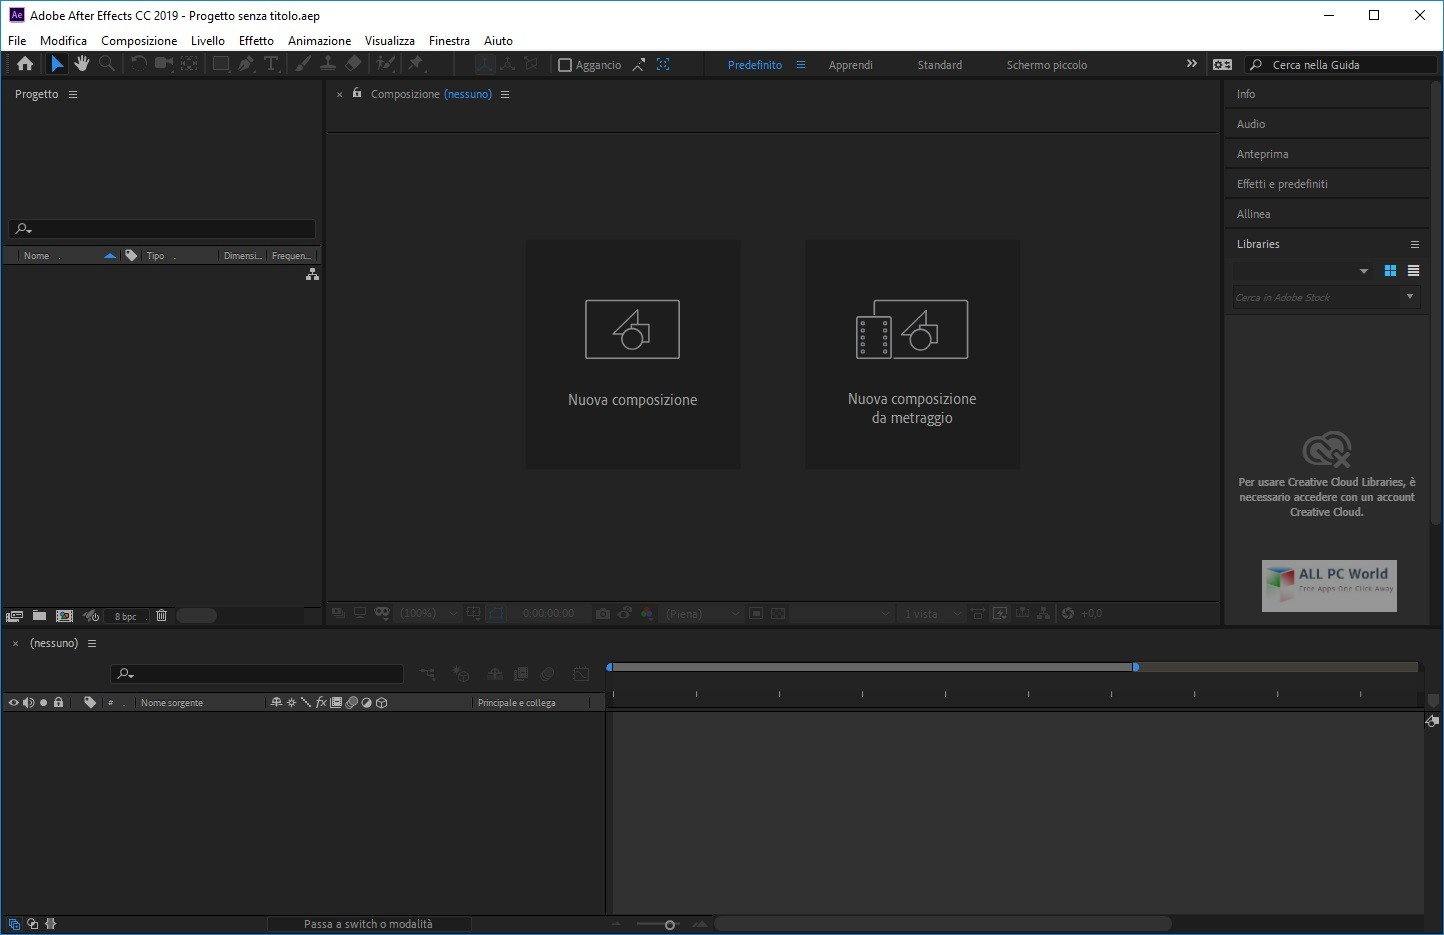 Adobe After Effects CC 2020 v17.0.2.26 Free Download